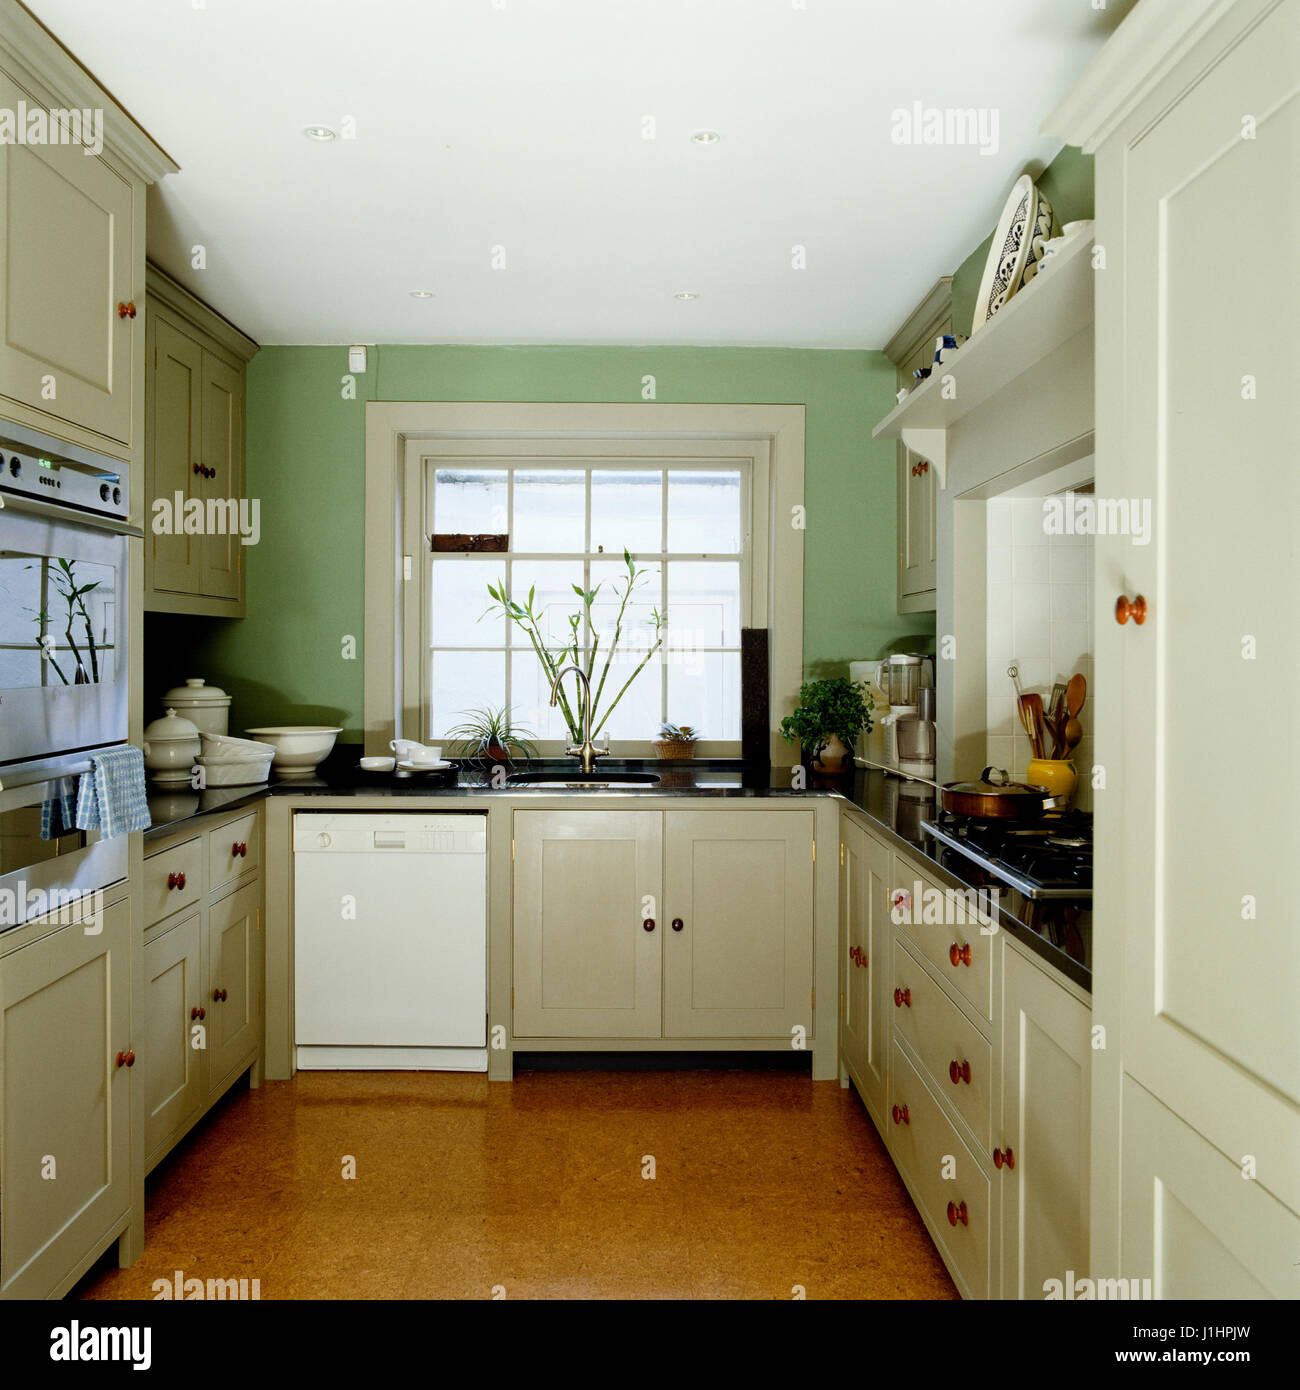 Simple Country Style Kitchen Stock Photo 138688561 Alamy